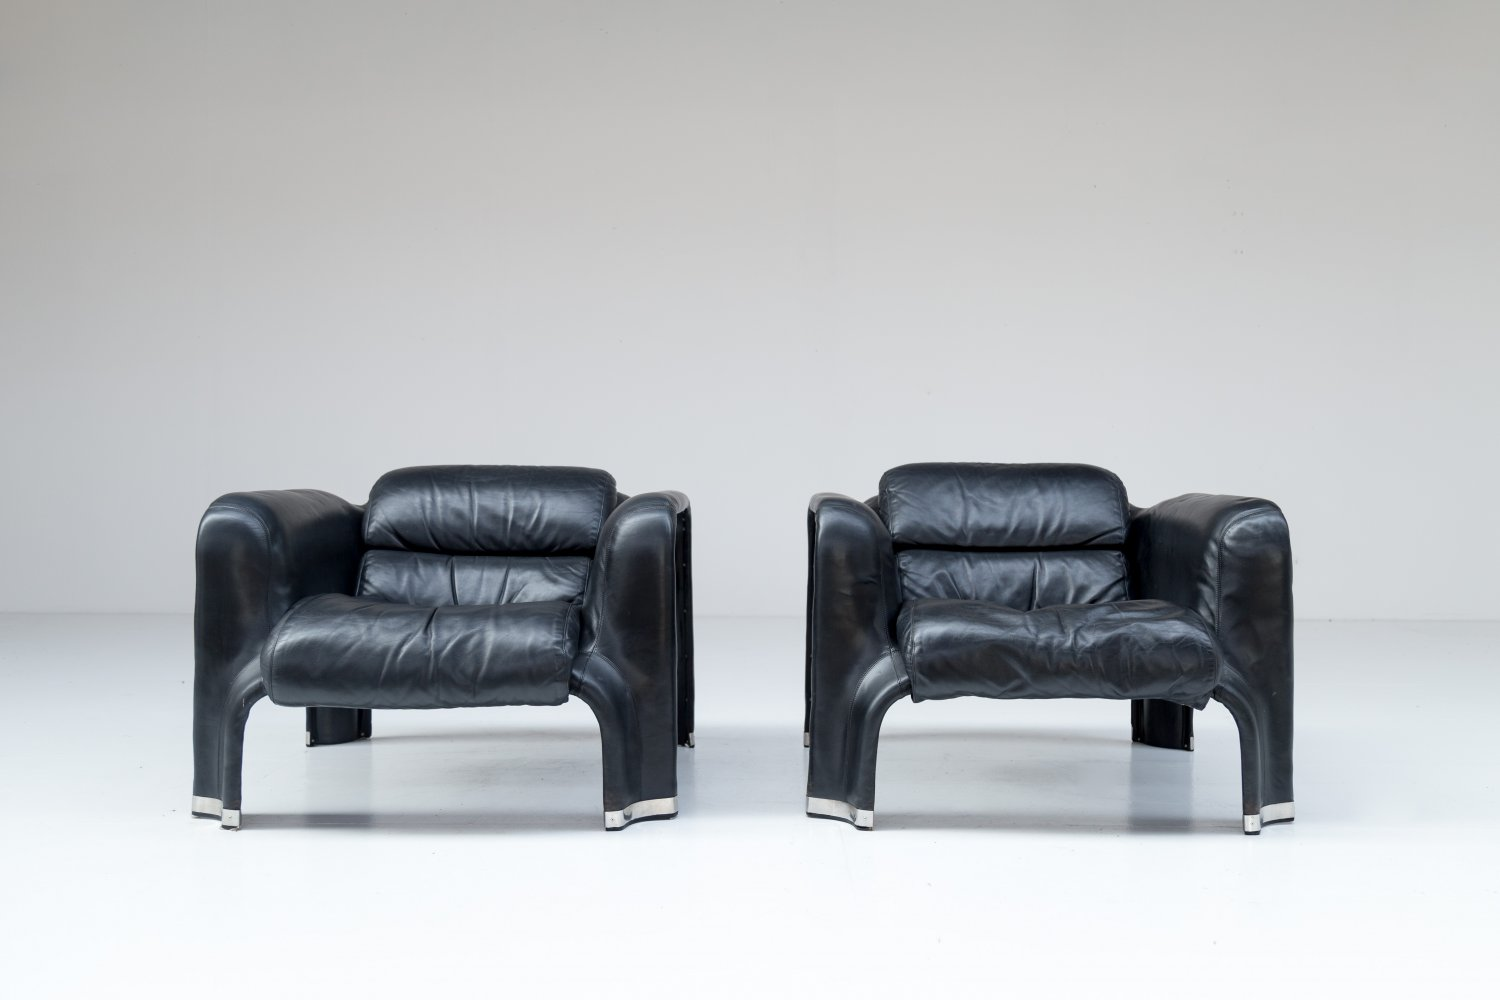 Pair of black leather Pohjola chairs by Pekka Perjo for Haimi Finland.